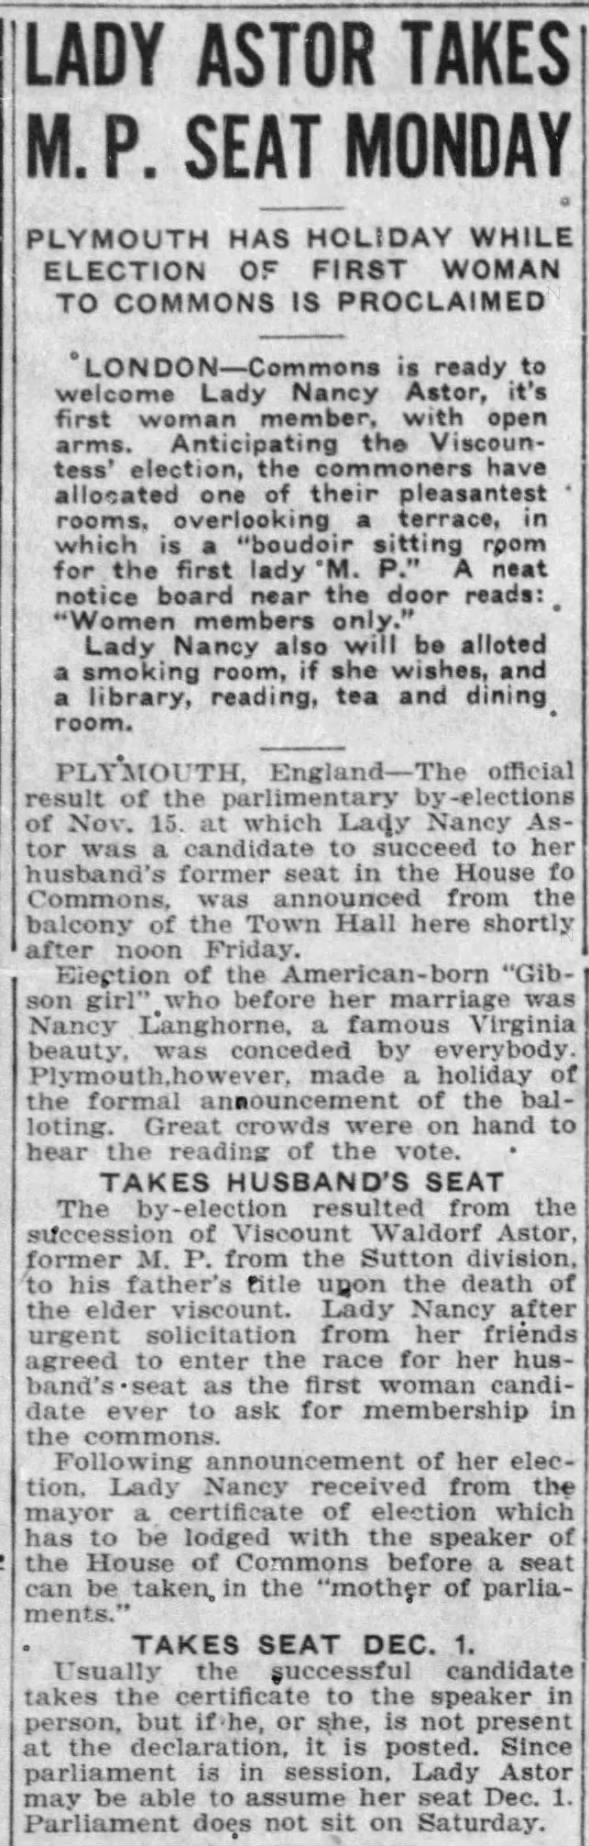 Lady Astor becomes first woman elected to Parliament